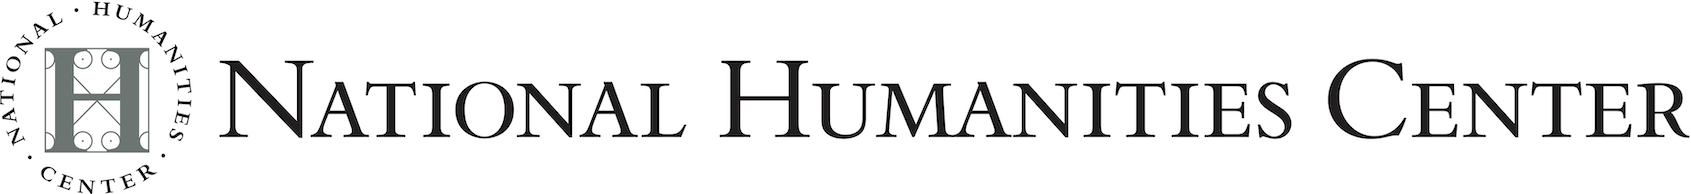 National Humanities Center horizon logo